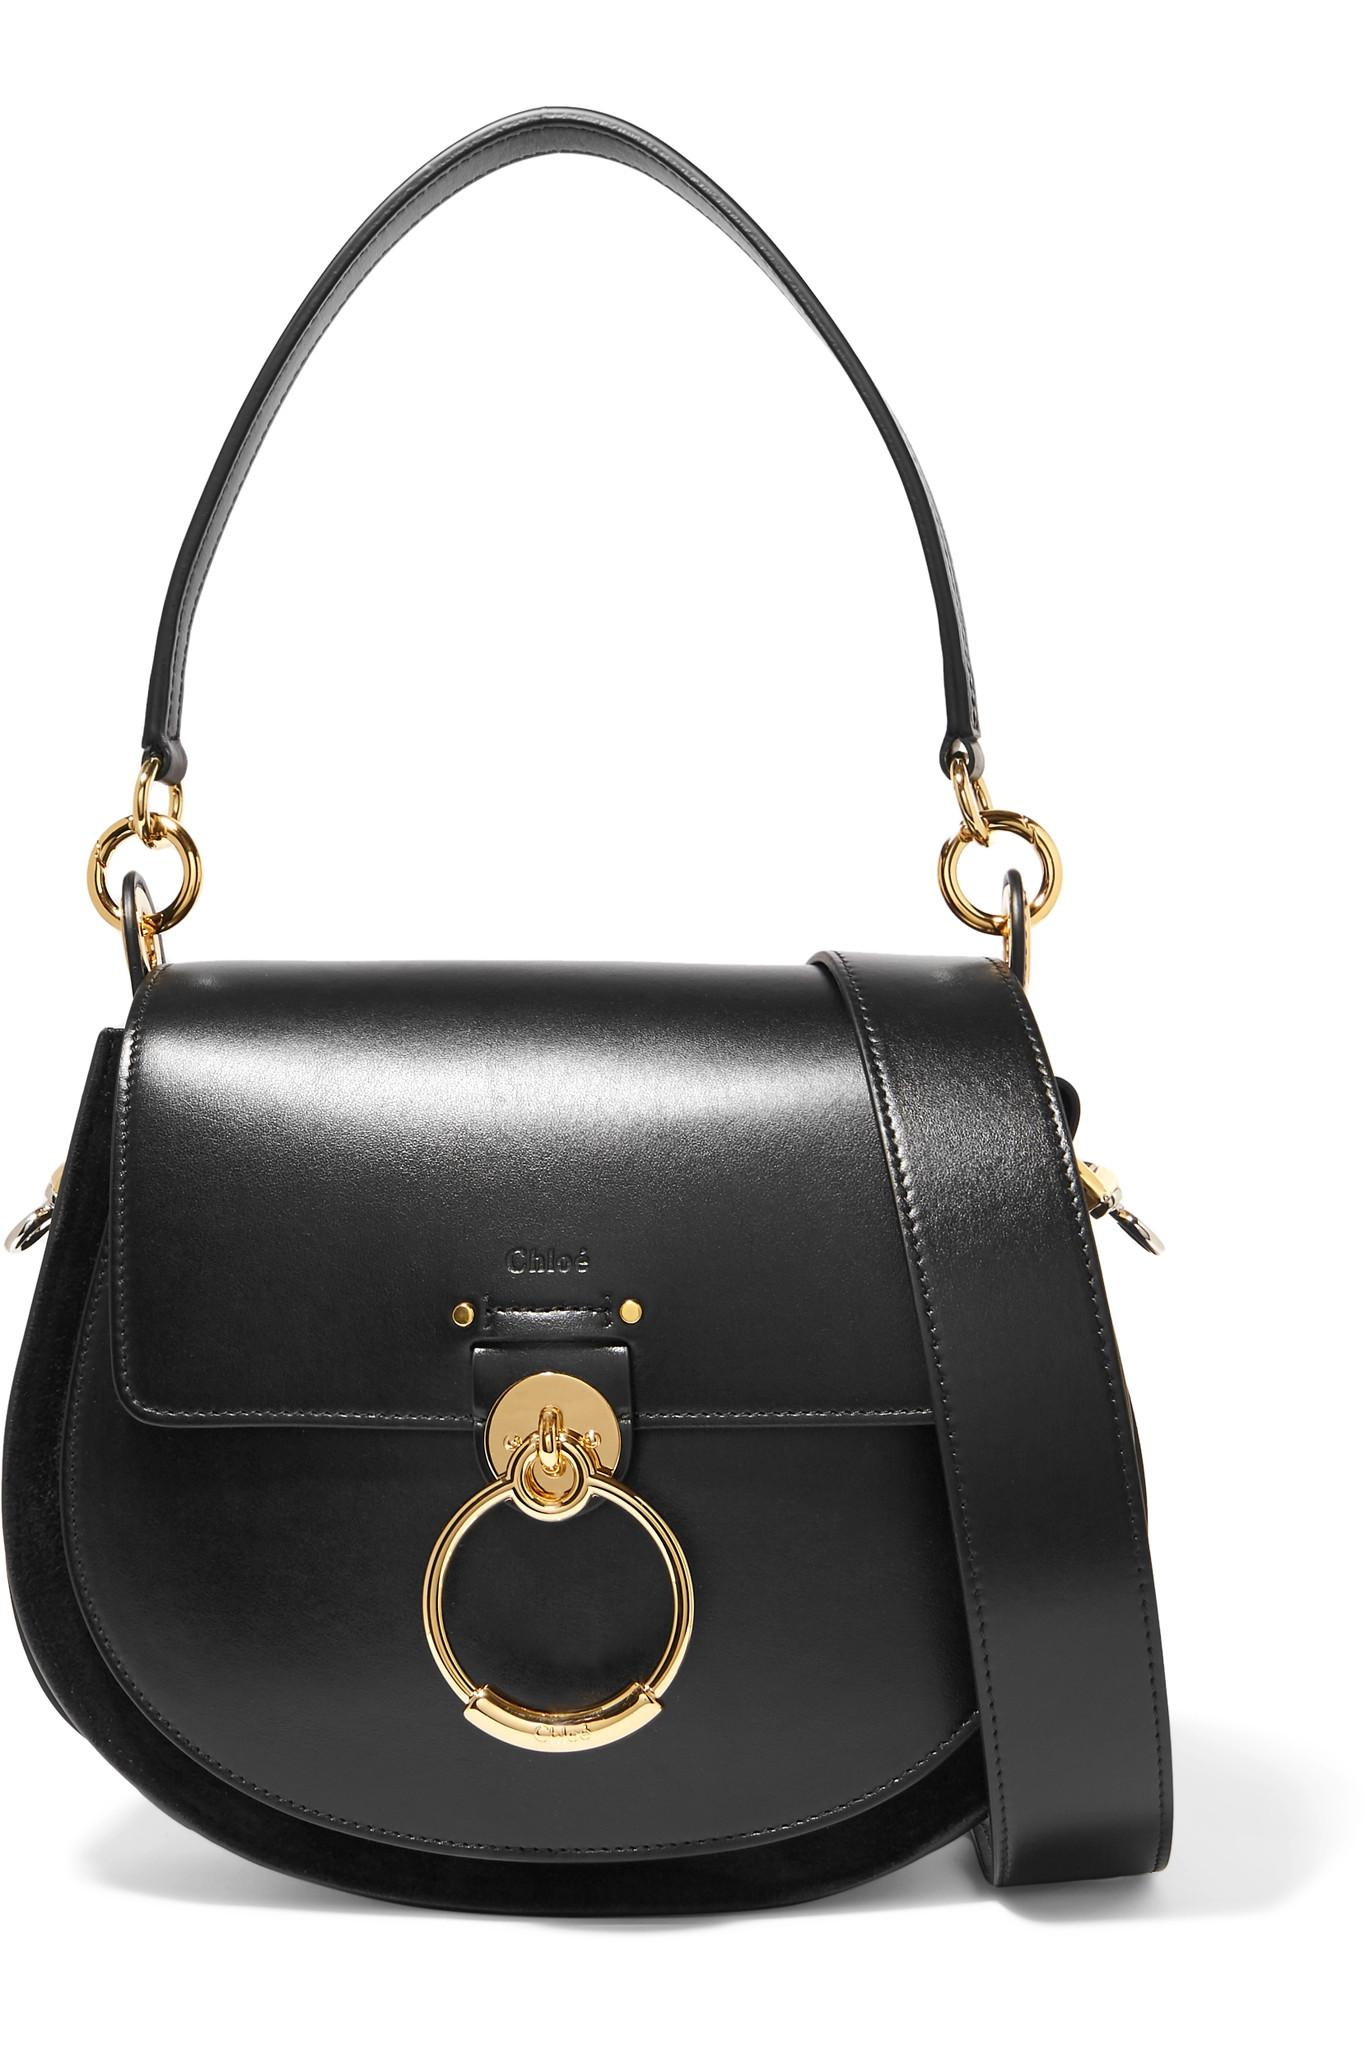 3fd6fc639e1c Chloé - Black Tess Large Leather And Suede Shoulder Bag - Lyst. View  fullscreen